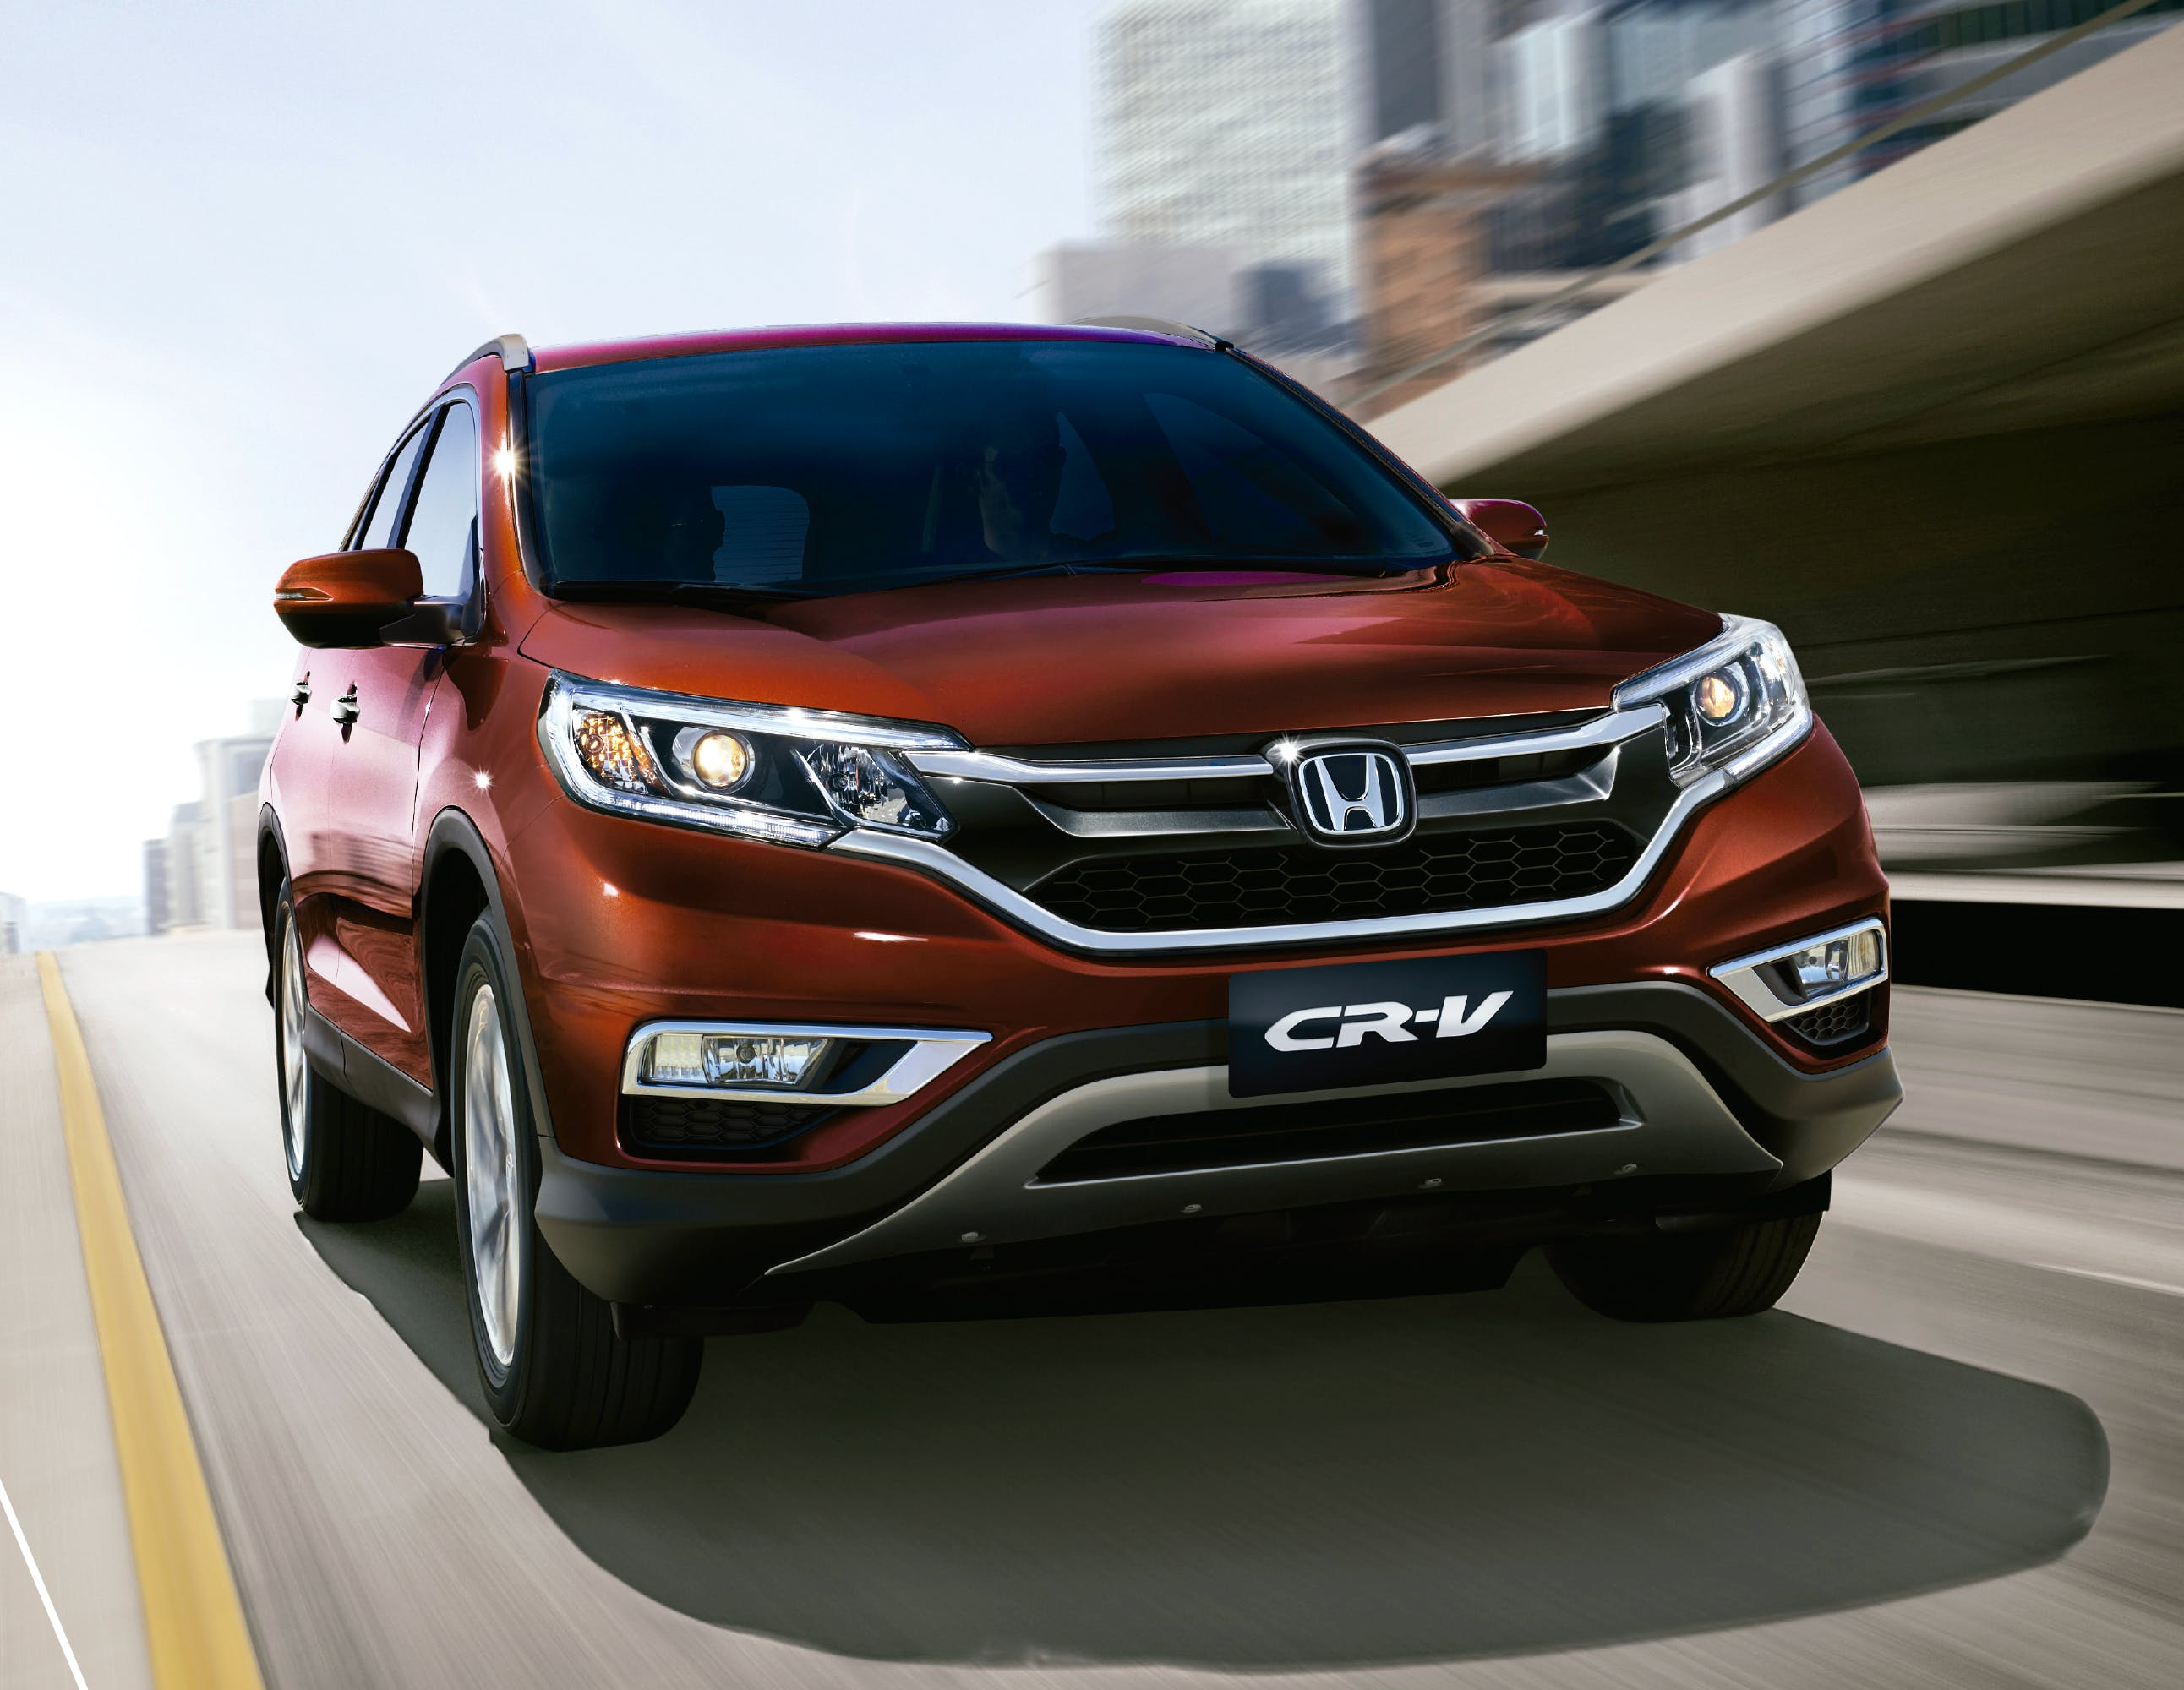 Honda CR-V - Thumb